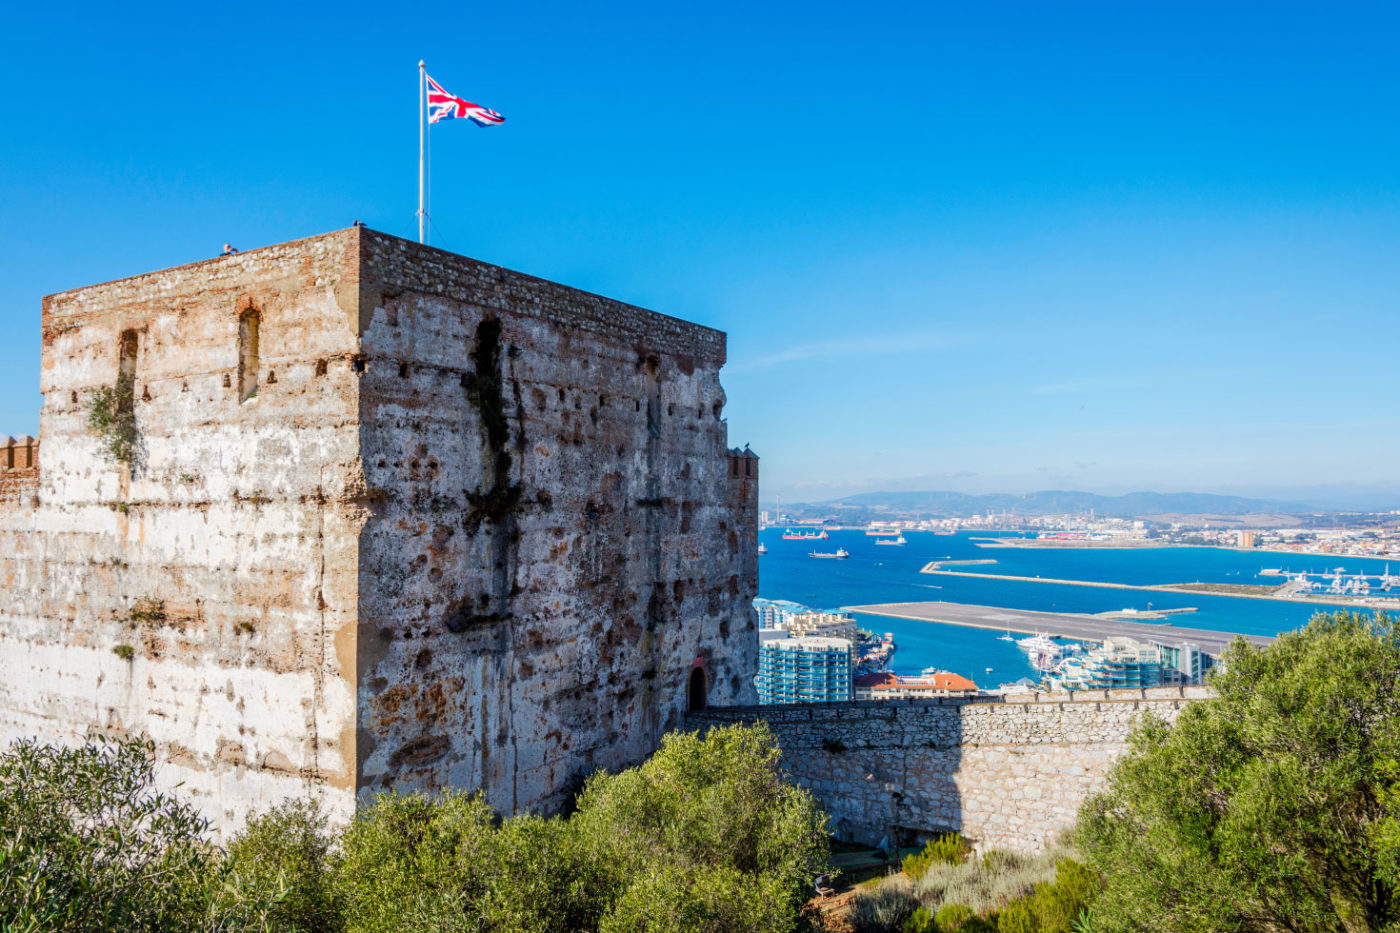 Moorish Castle With British Flag Flying